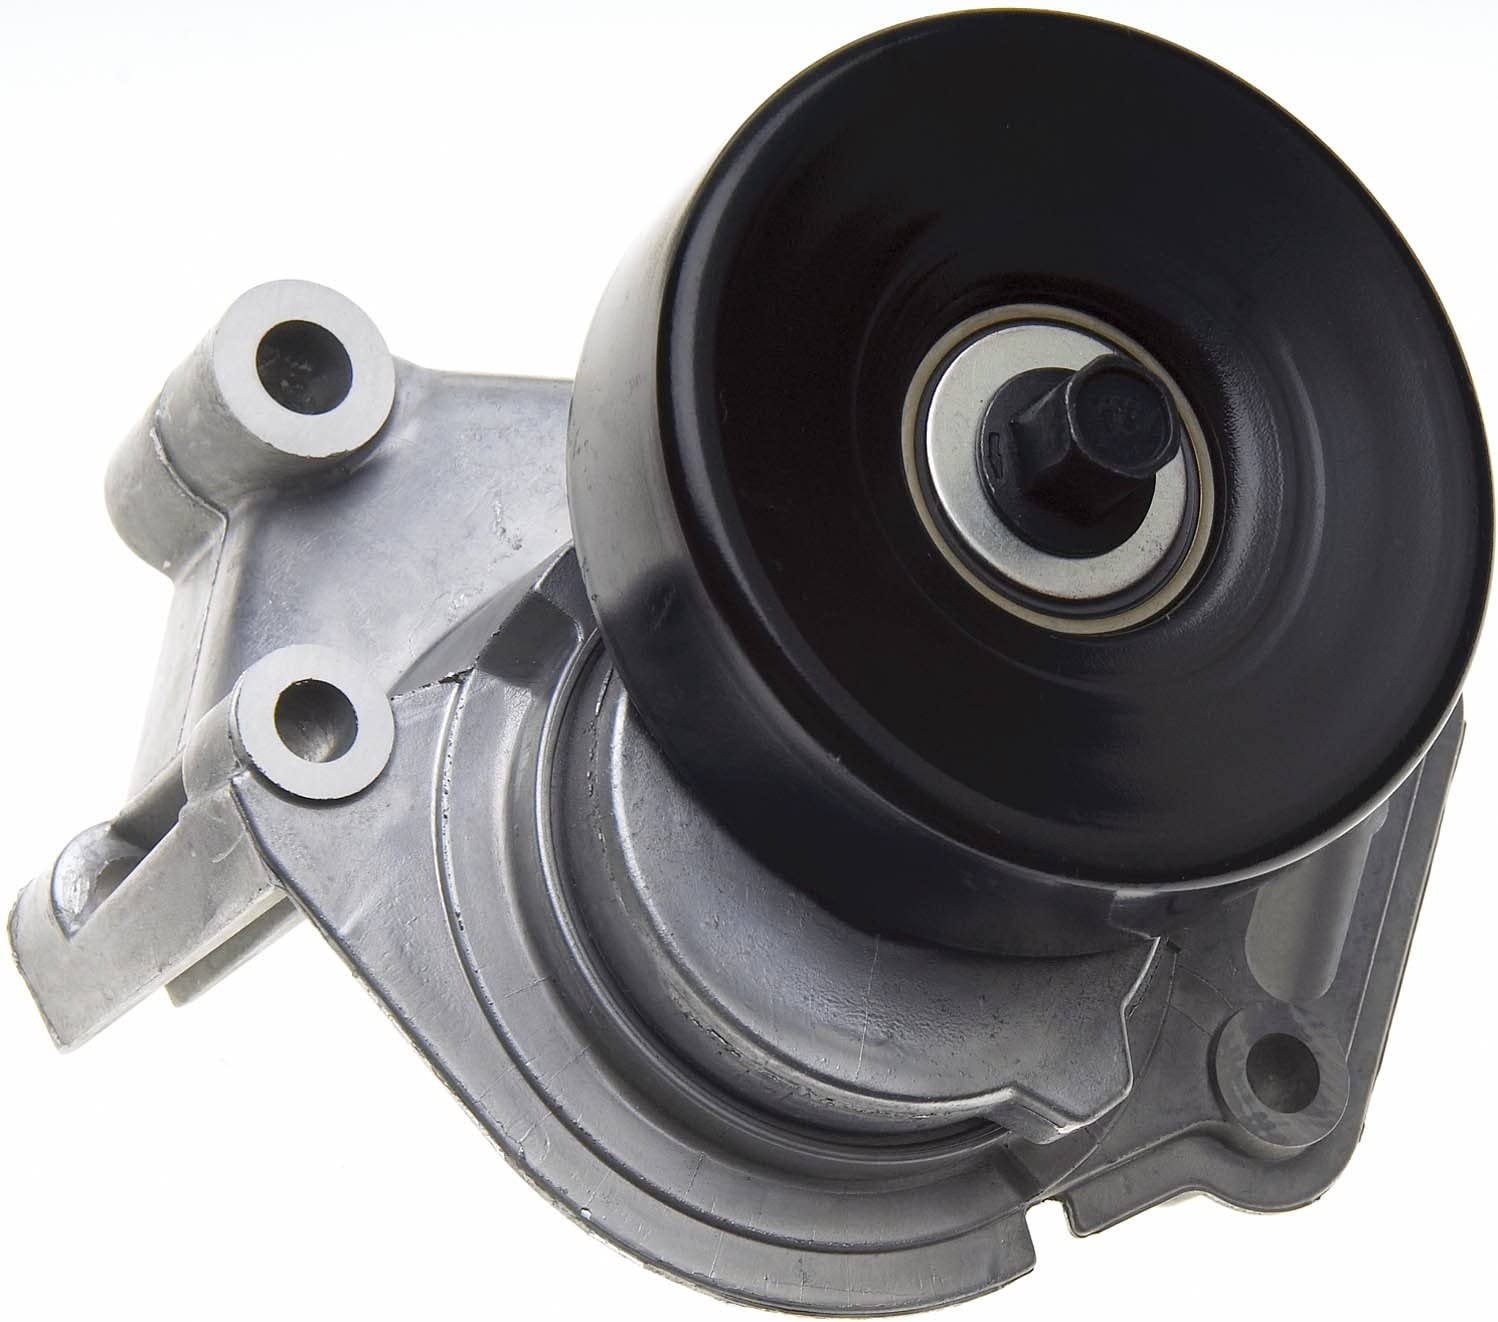 Pulley and Belt ACDelco ACK060882K1 Professional Automatic Belt Tensioner and Pulley Kit with Tensioner